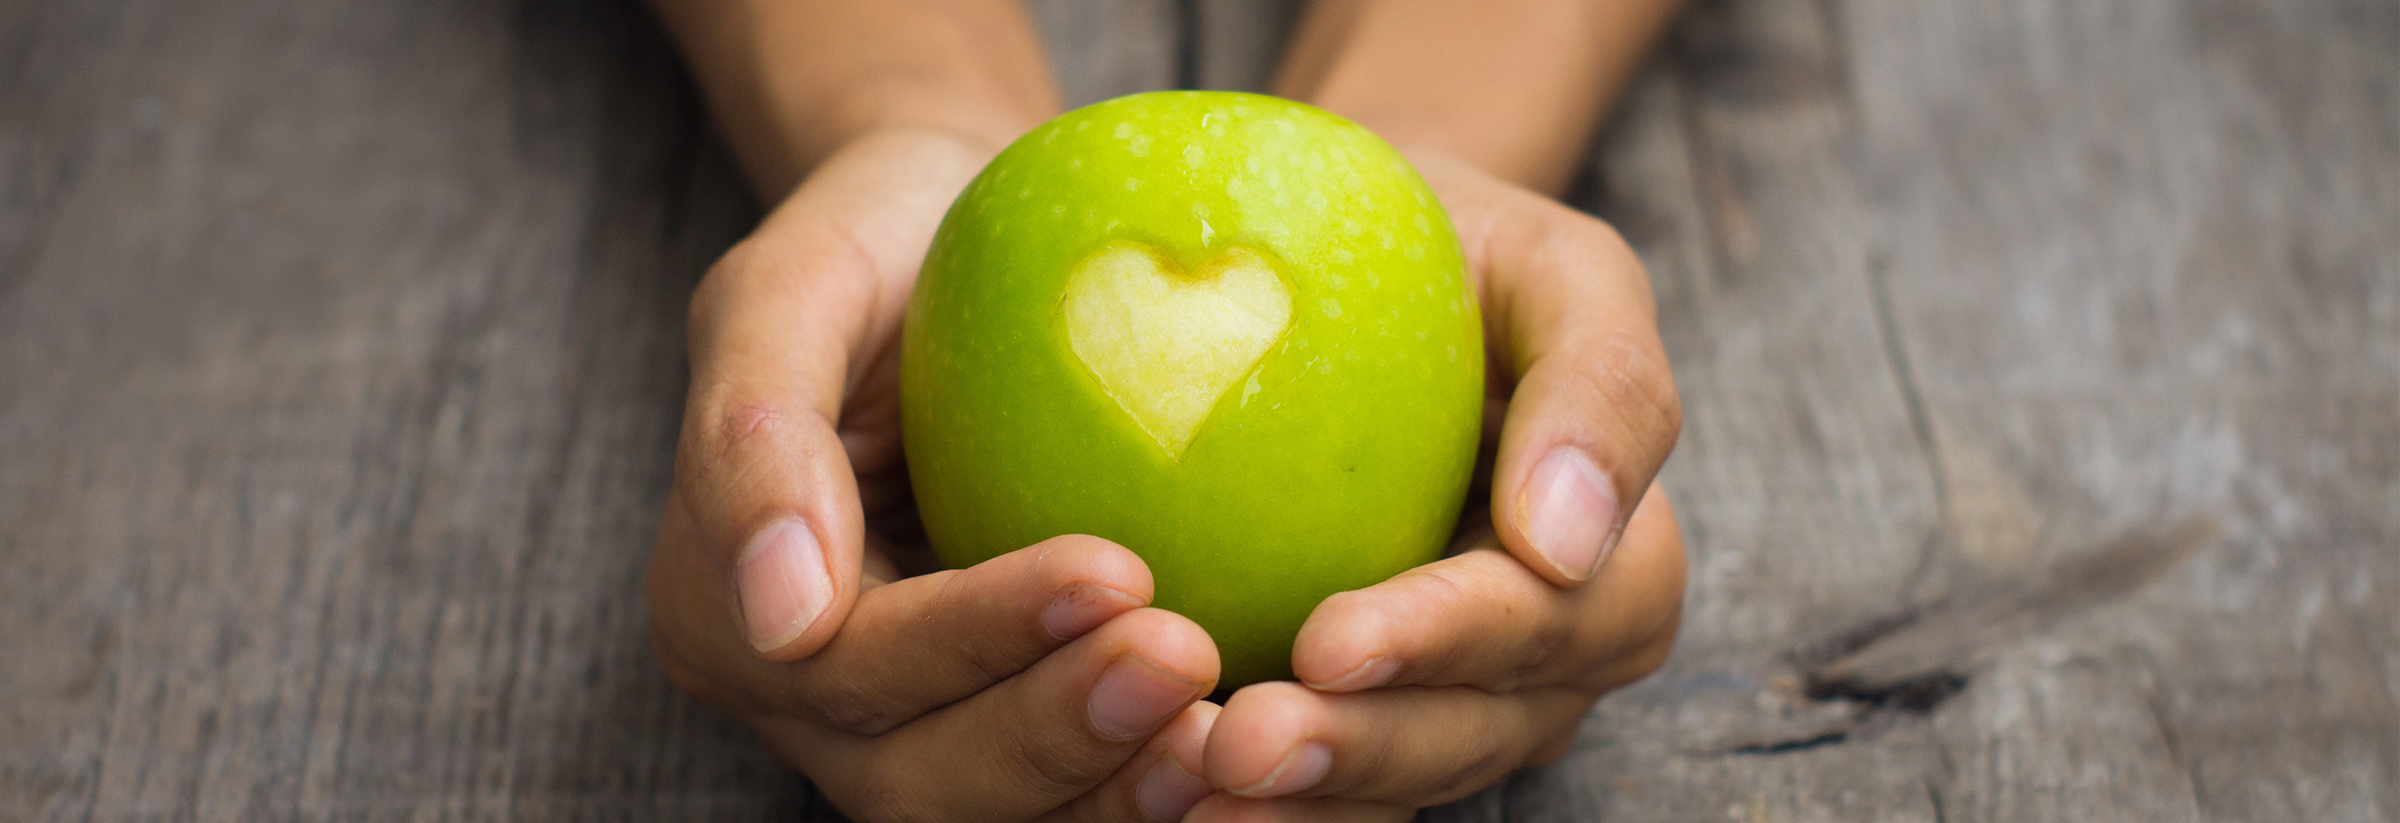 Hands cradling a green apple with a heart shapped bit missing.